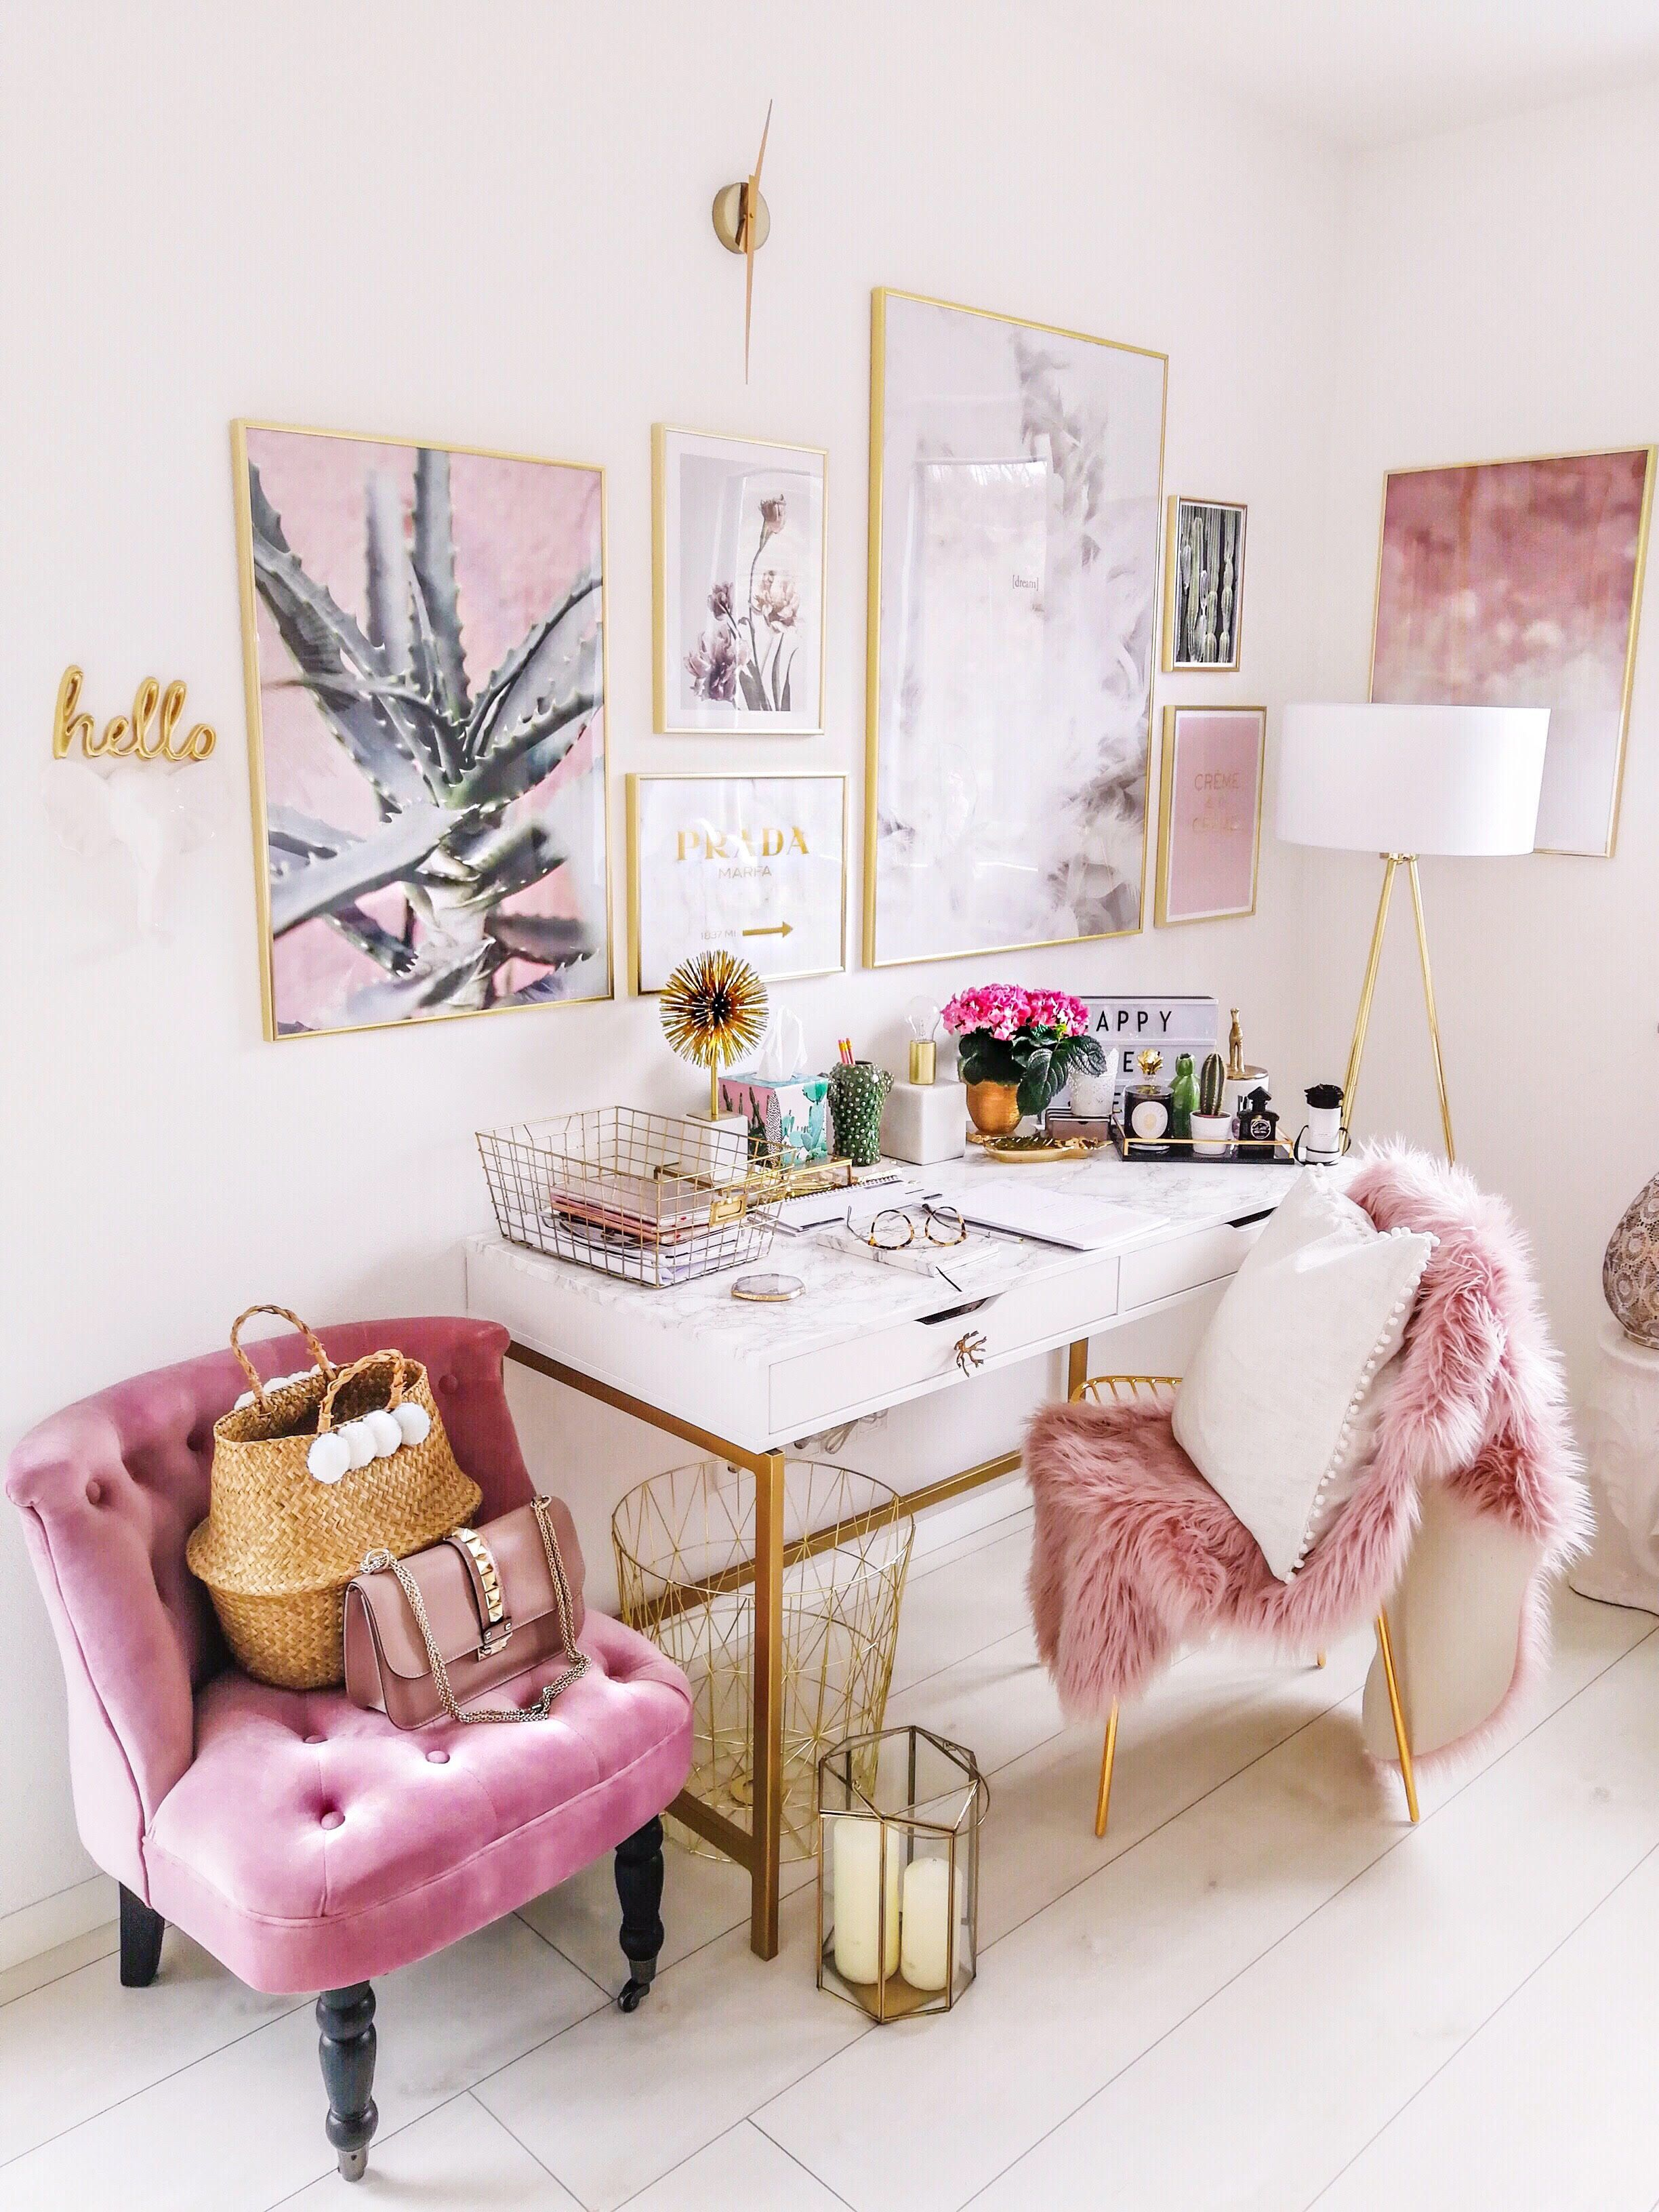 Home decor inspiration office design pink white also best images in arquitetura bed room bedrooms rh pinterest